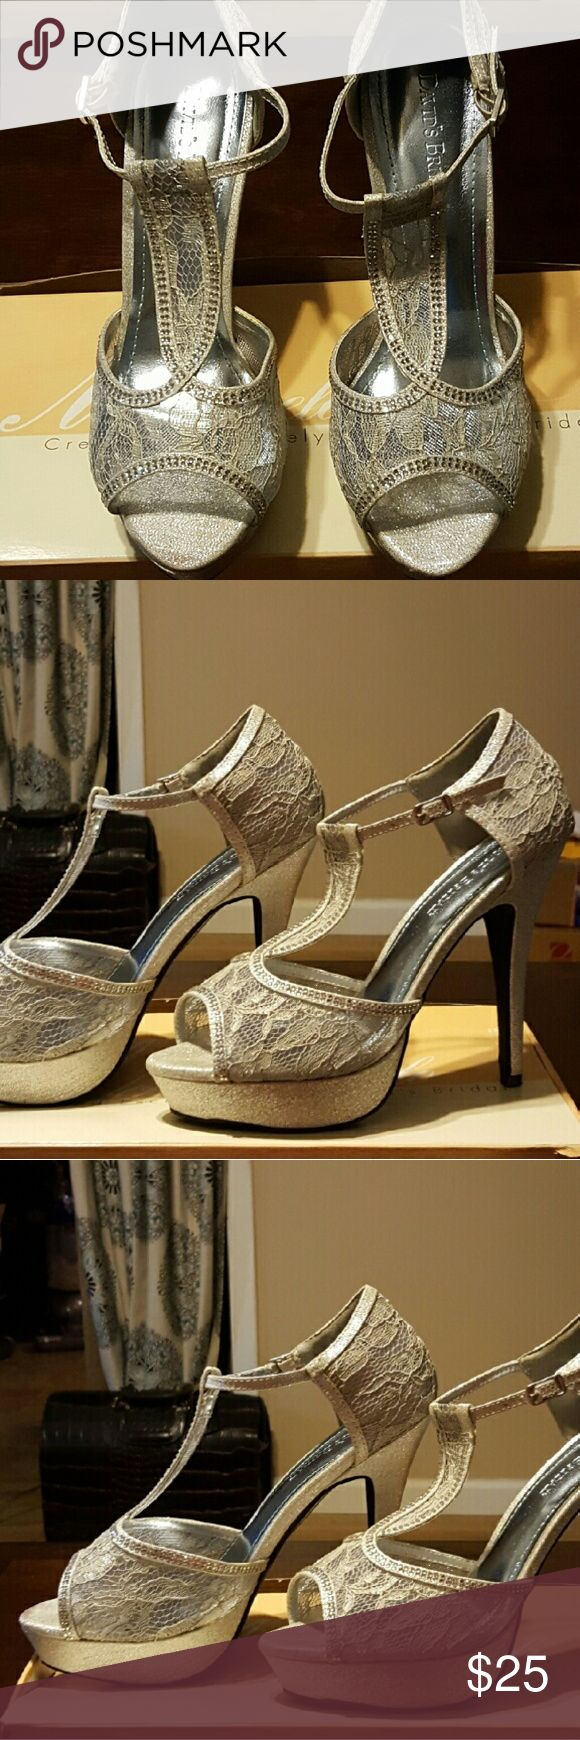 Silver bling heels Beautiful silver bling heels. Prom, wedding, etc.. Worn once. Size 8.5. Very beautiful and sexy on. Davids Bridal Shoes Heels